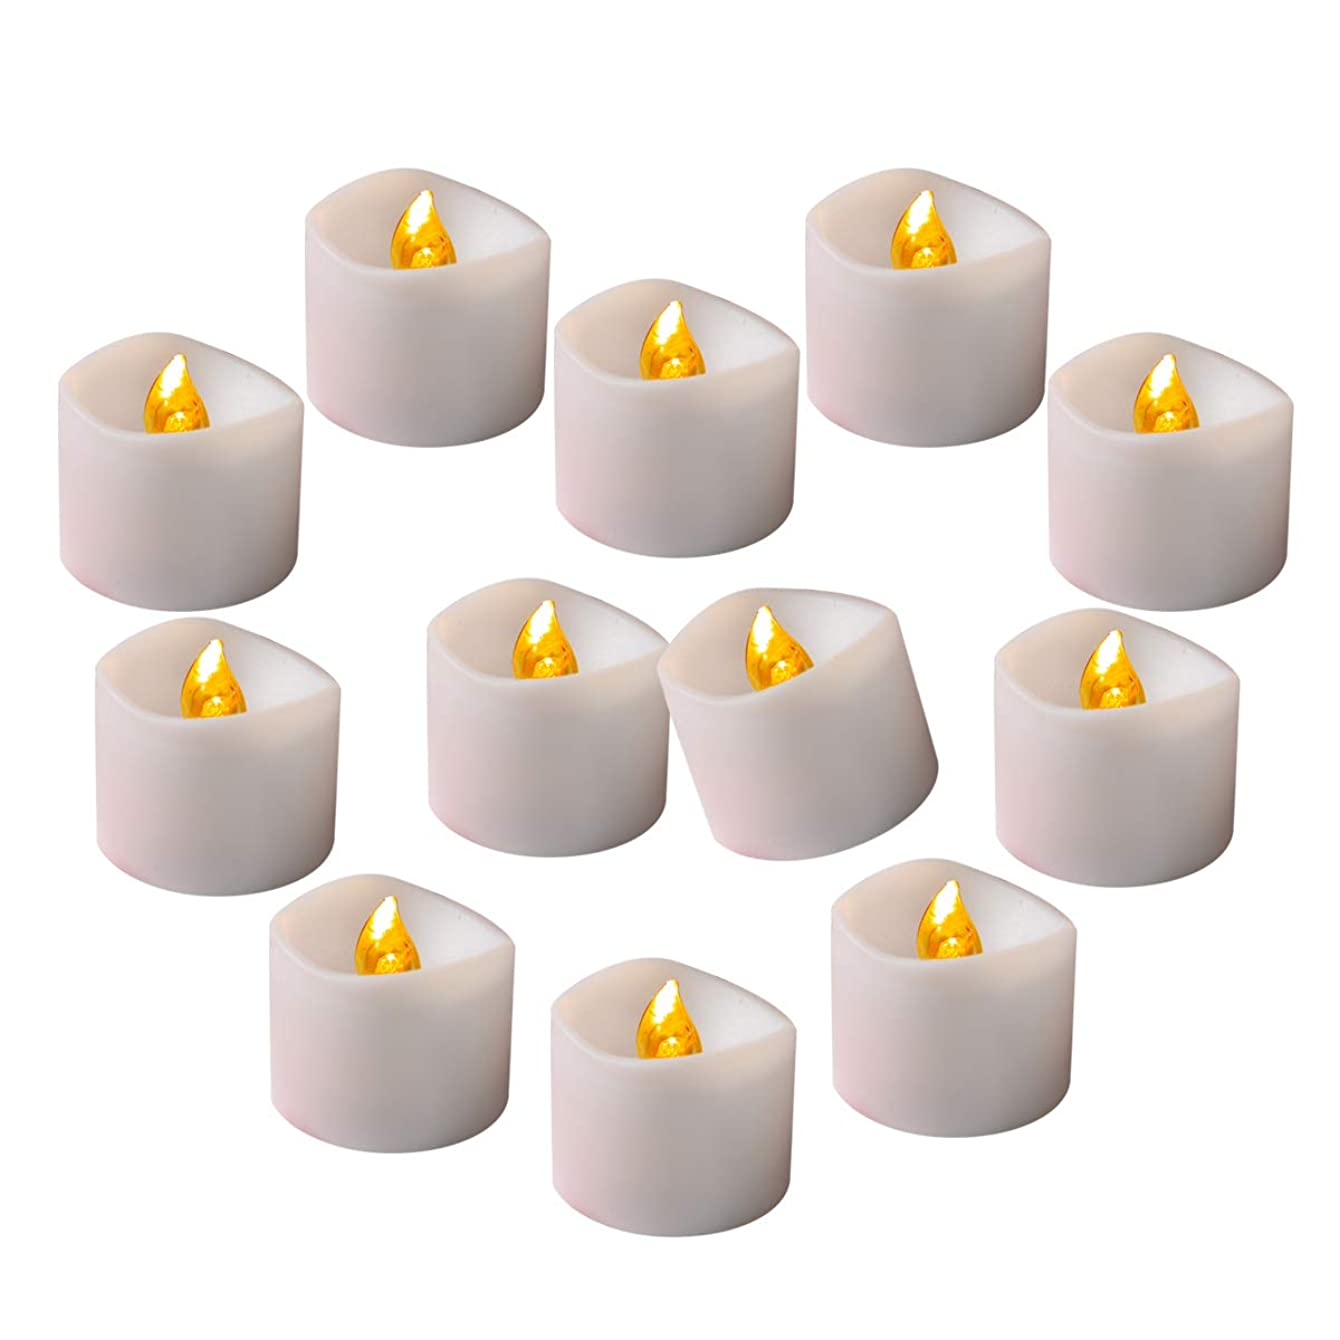 Cozeyat Flameless LED Tea Lights with Timer (6 Hours on, 18 Hours Off) Flickering Candles Amber Yellow 24pcs for Wedding Reception, Christmas Party, Window, Fireplace, Lantern, Craft Project